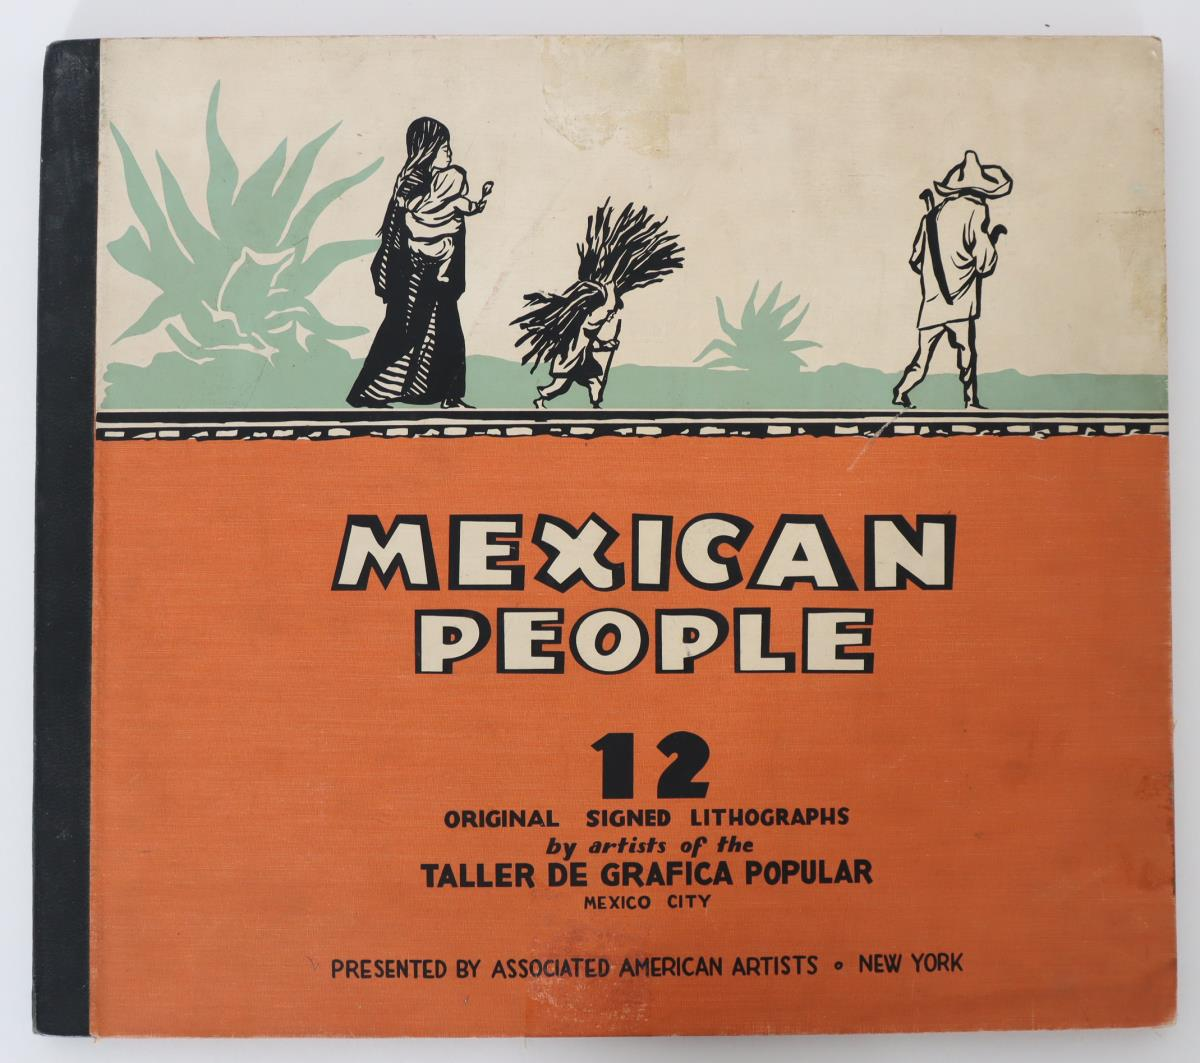 Various Artists, Mexican People Portfolio - Image 11 of 12